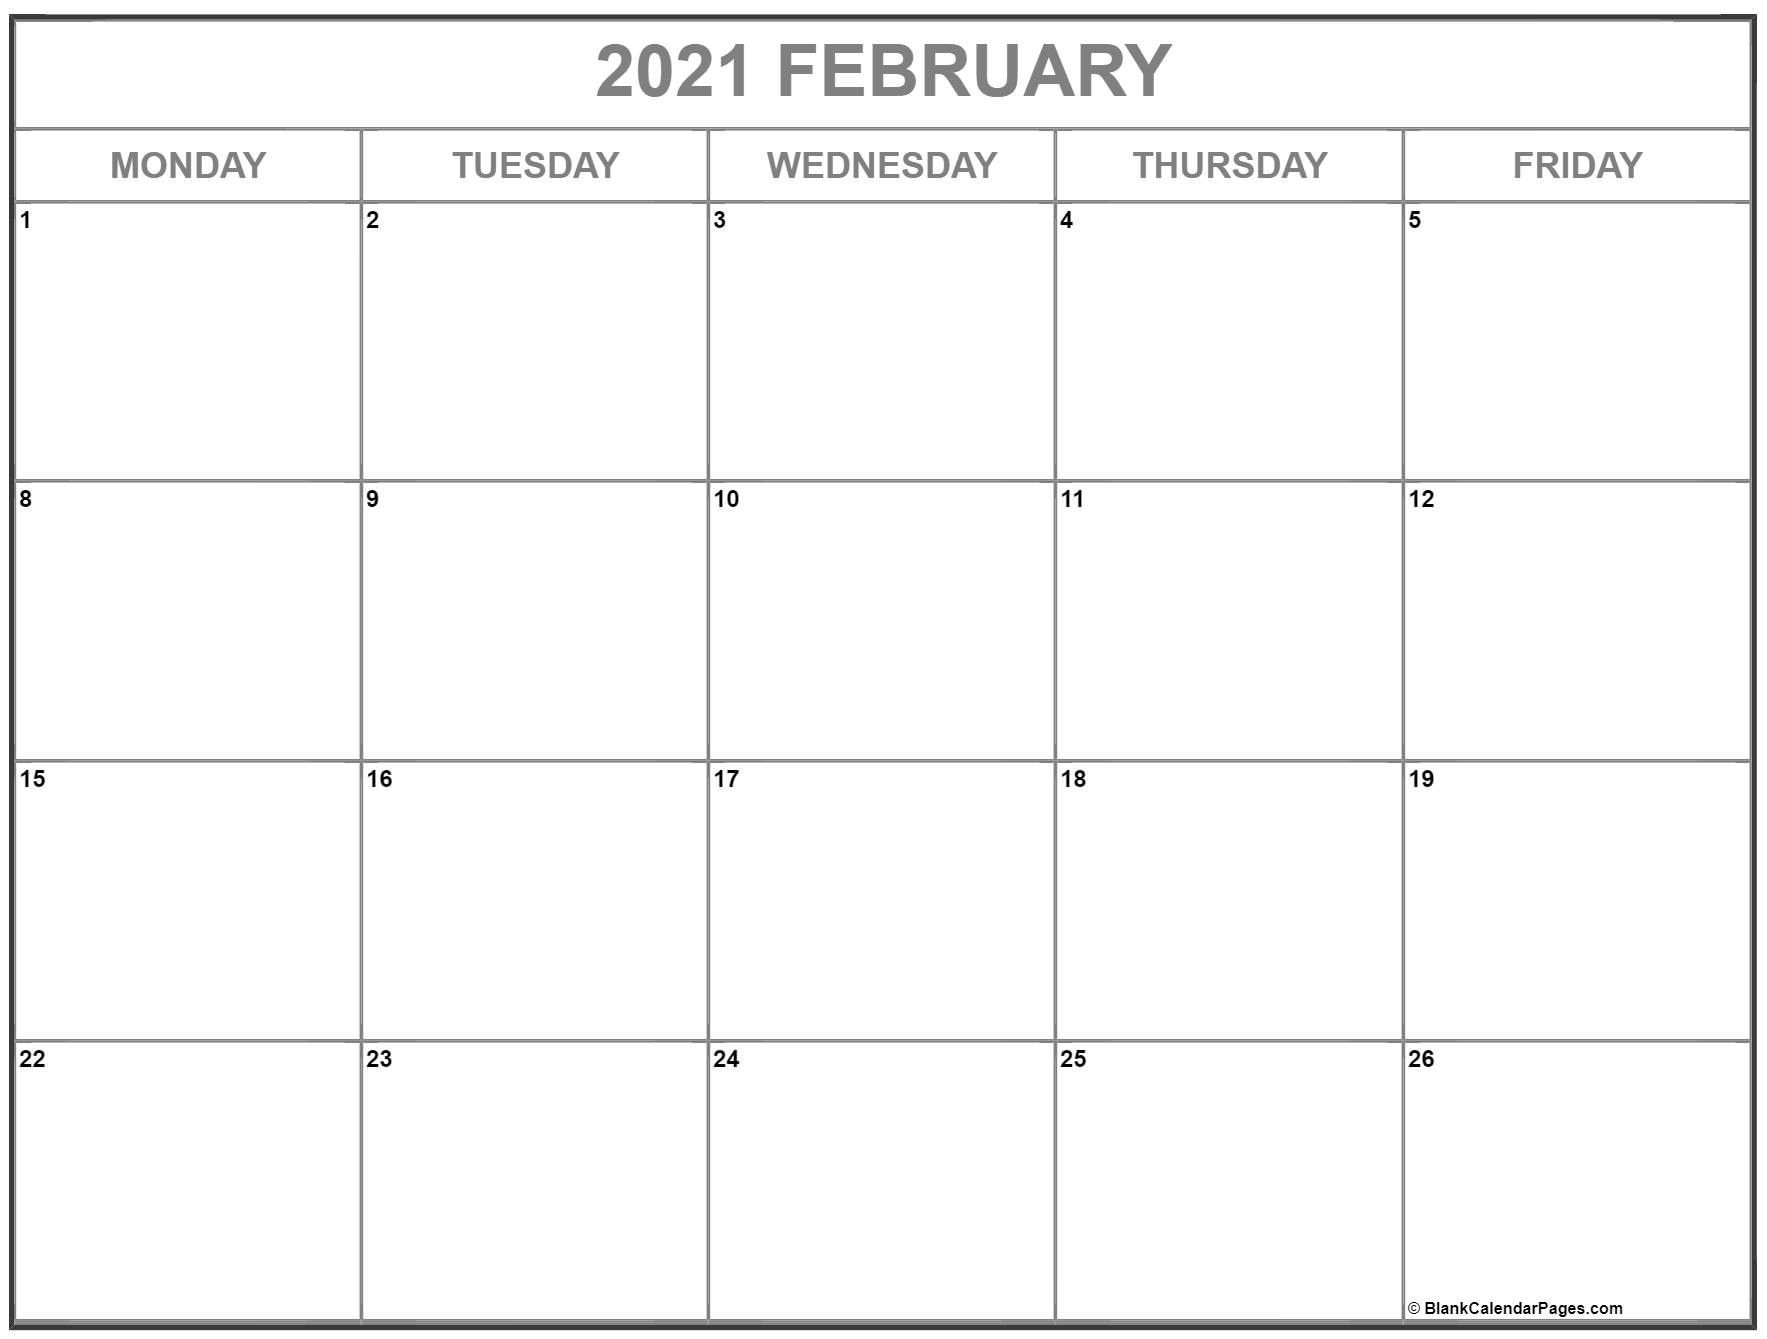 Monday – Friday Blank Calendar Template 2021